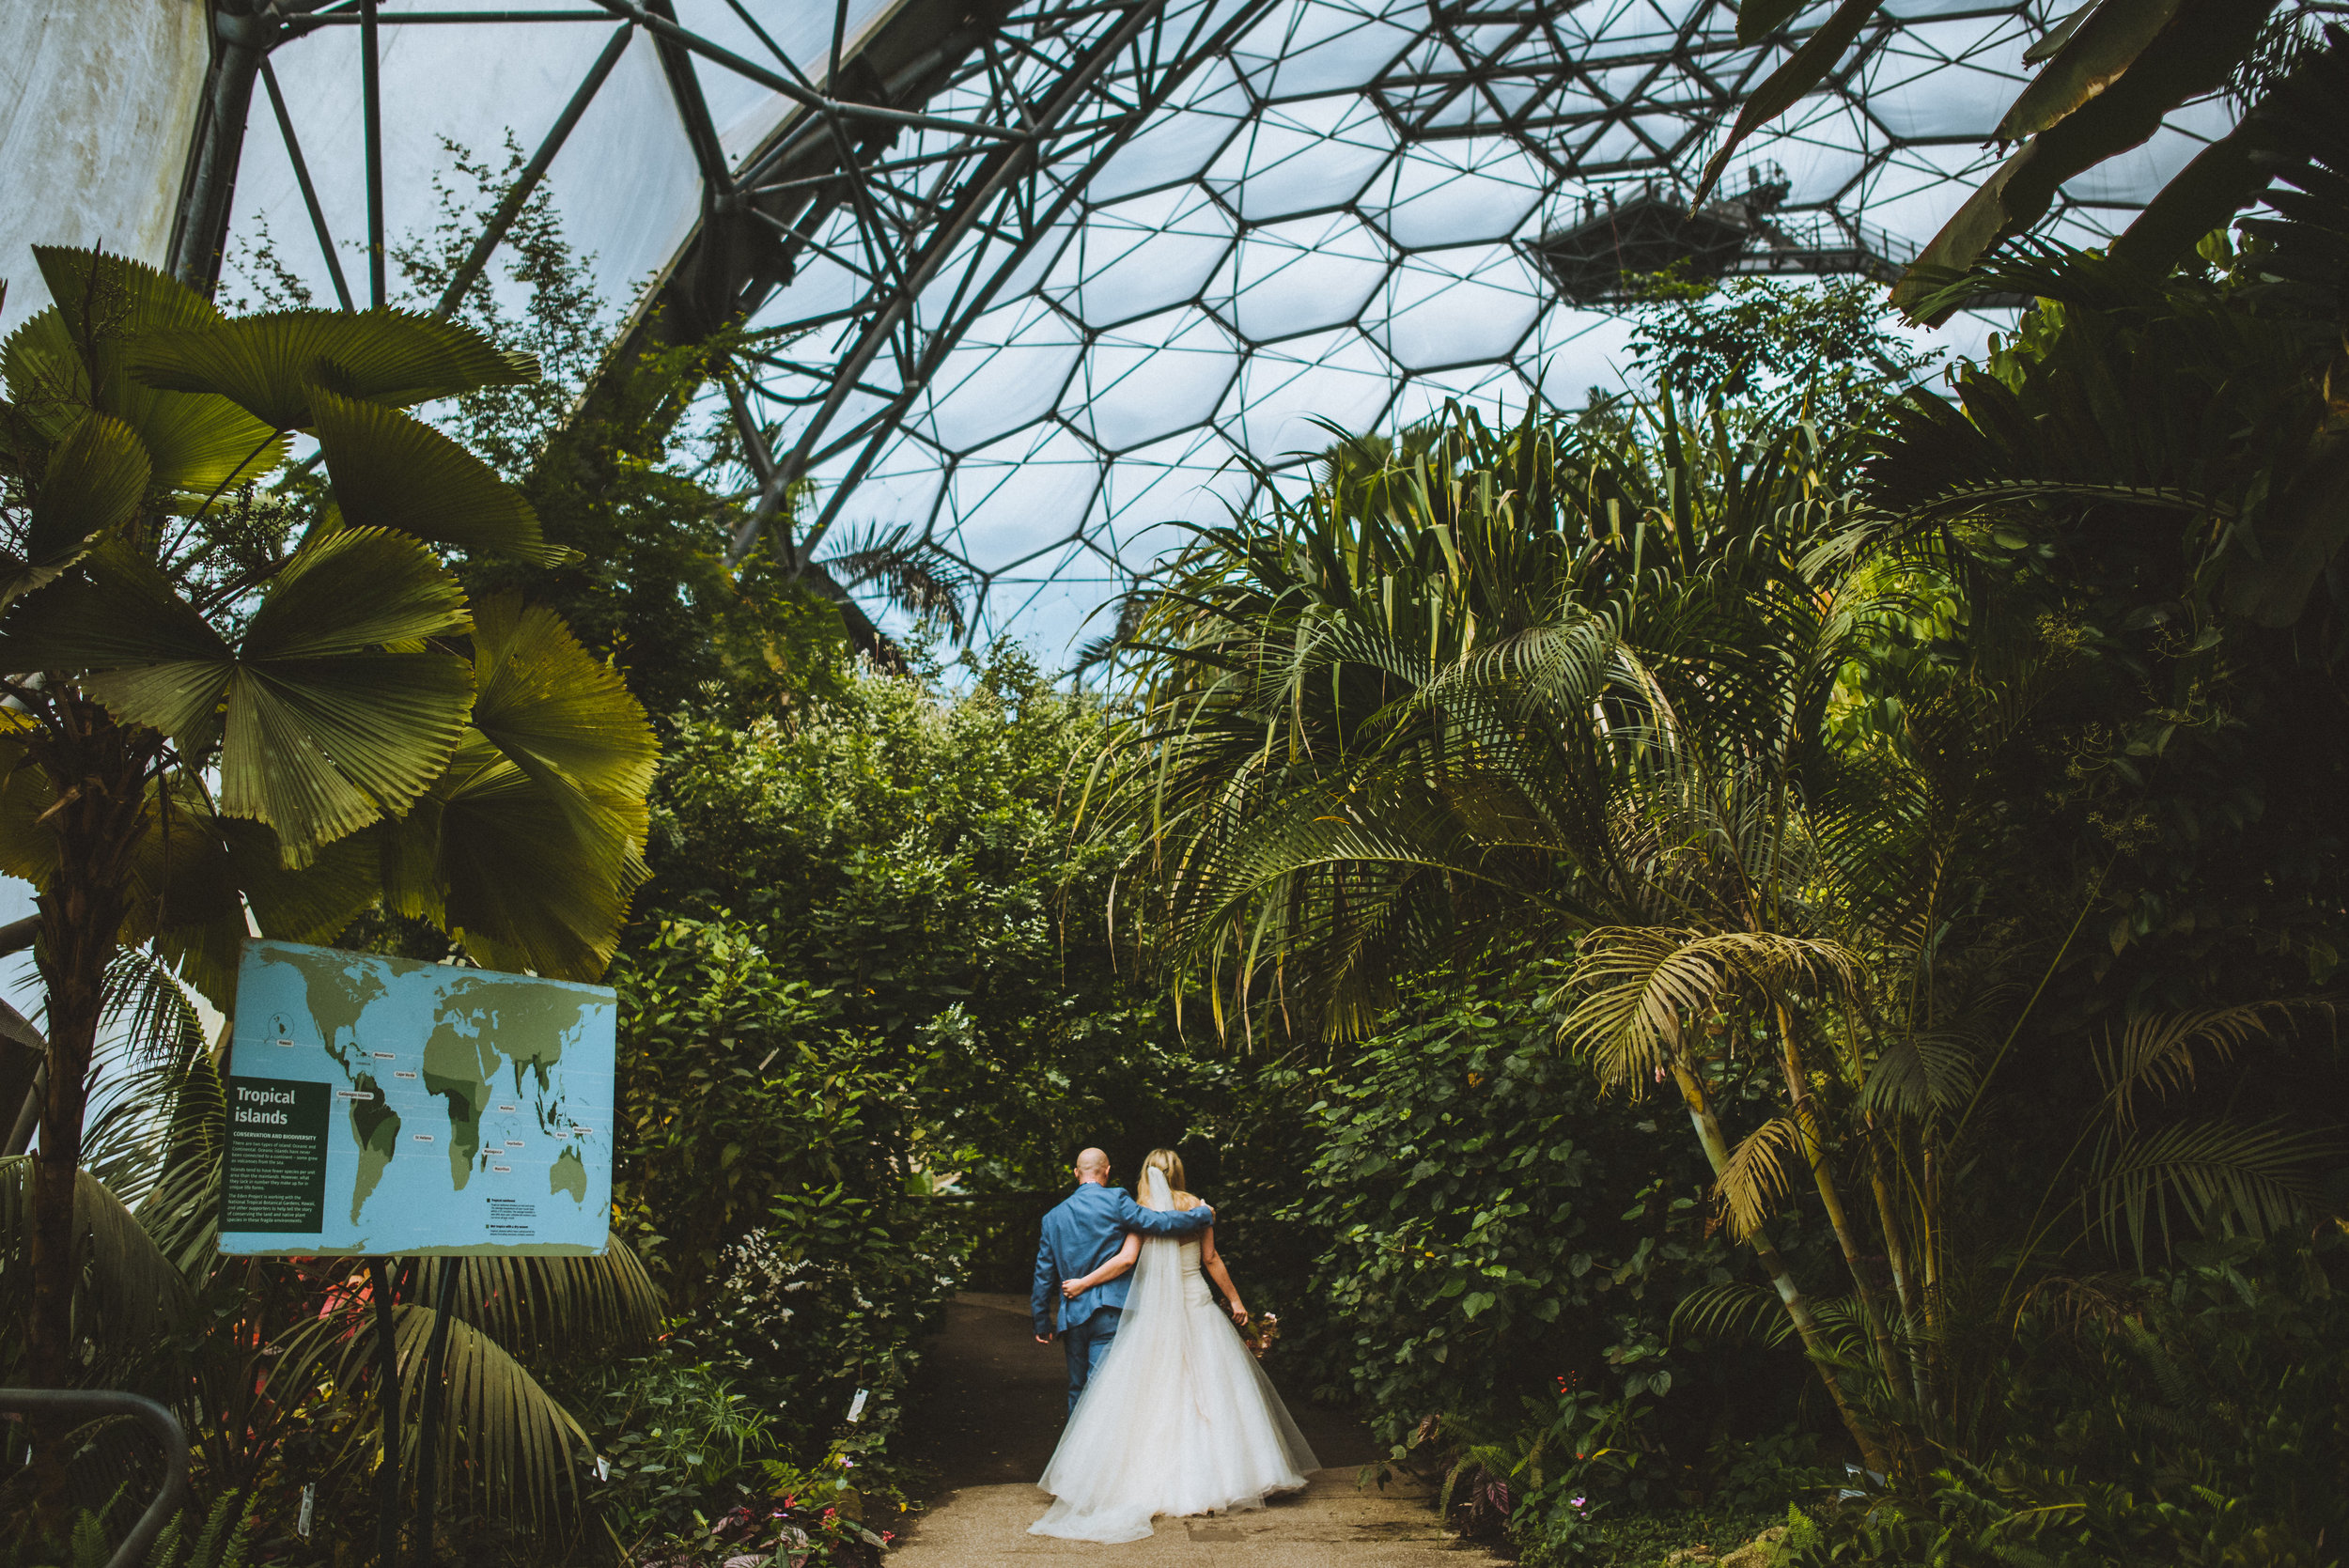 Eden-Project-Wedding-Photographer-1.jpg